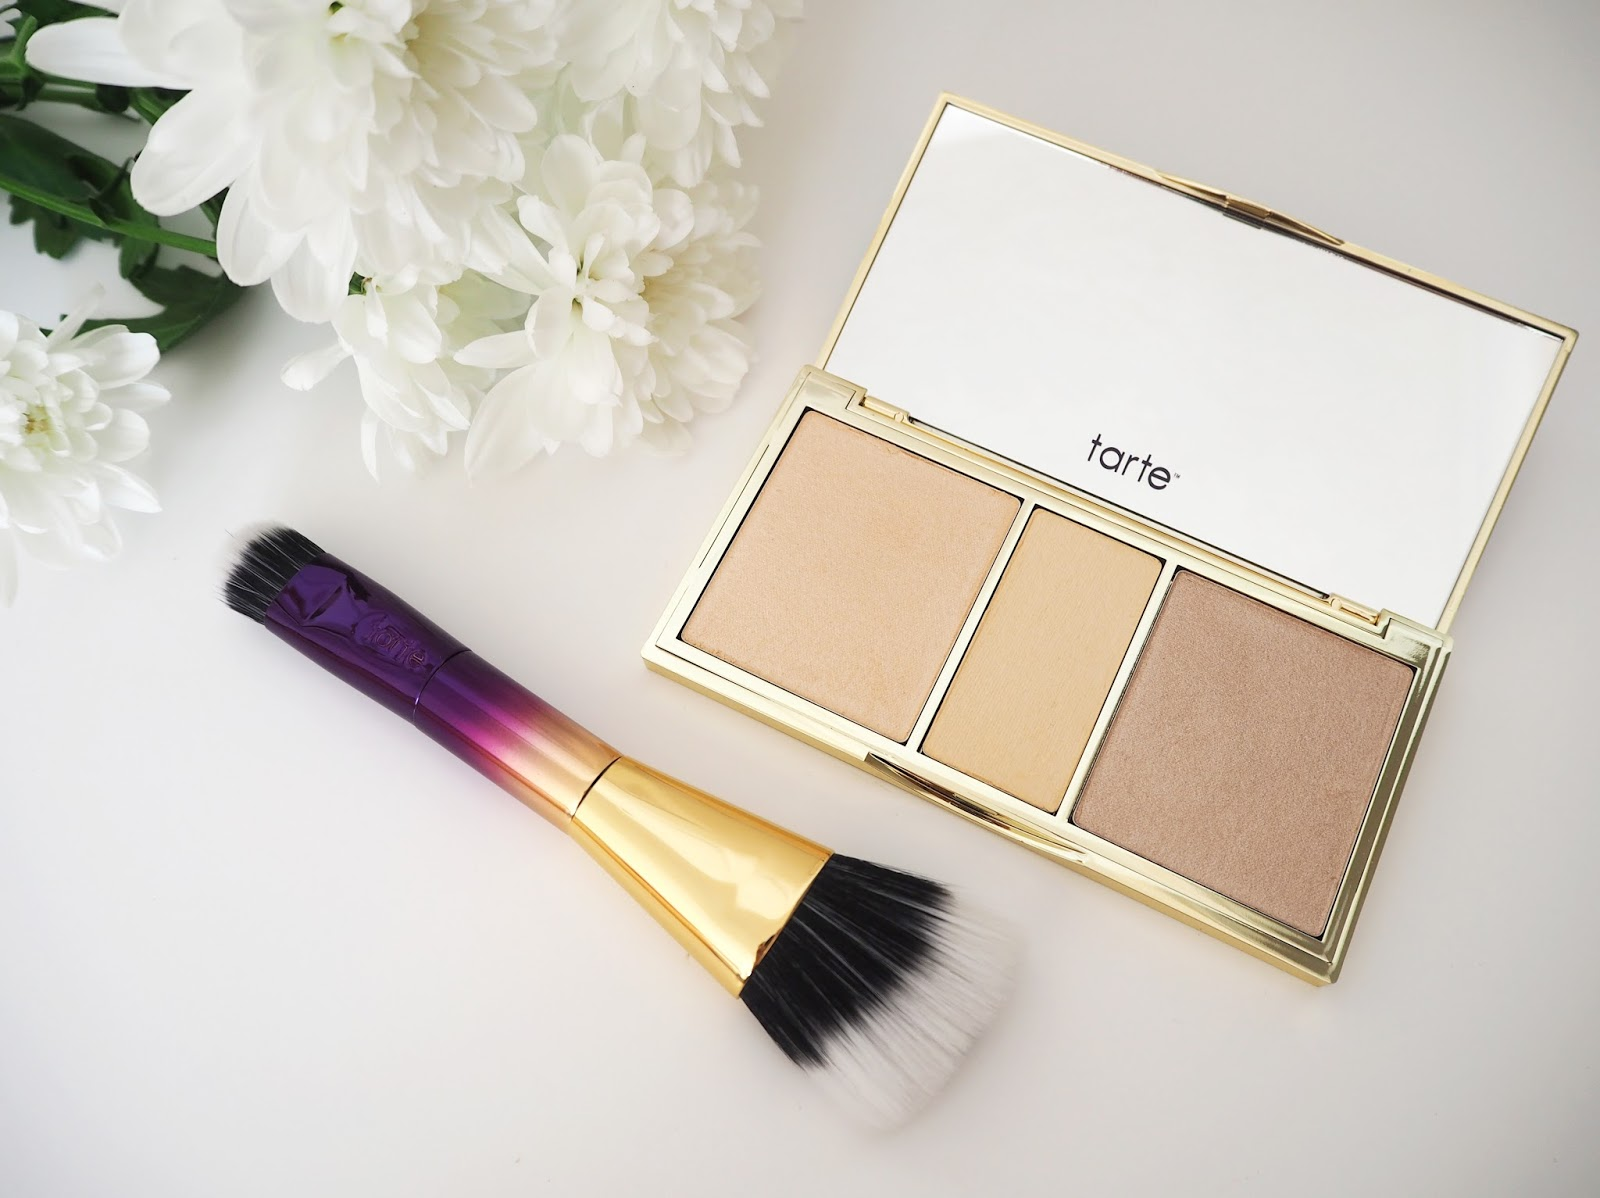 Loves List: June Tarte Skin Twinkle Palette | Katie Kirk Loves